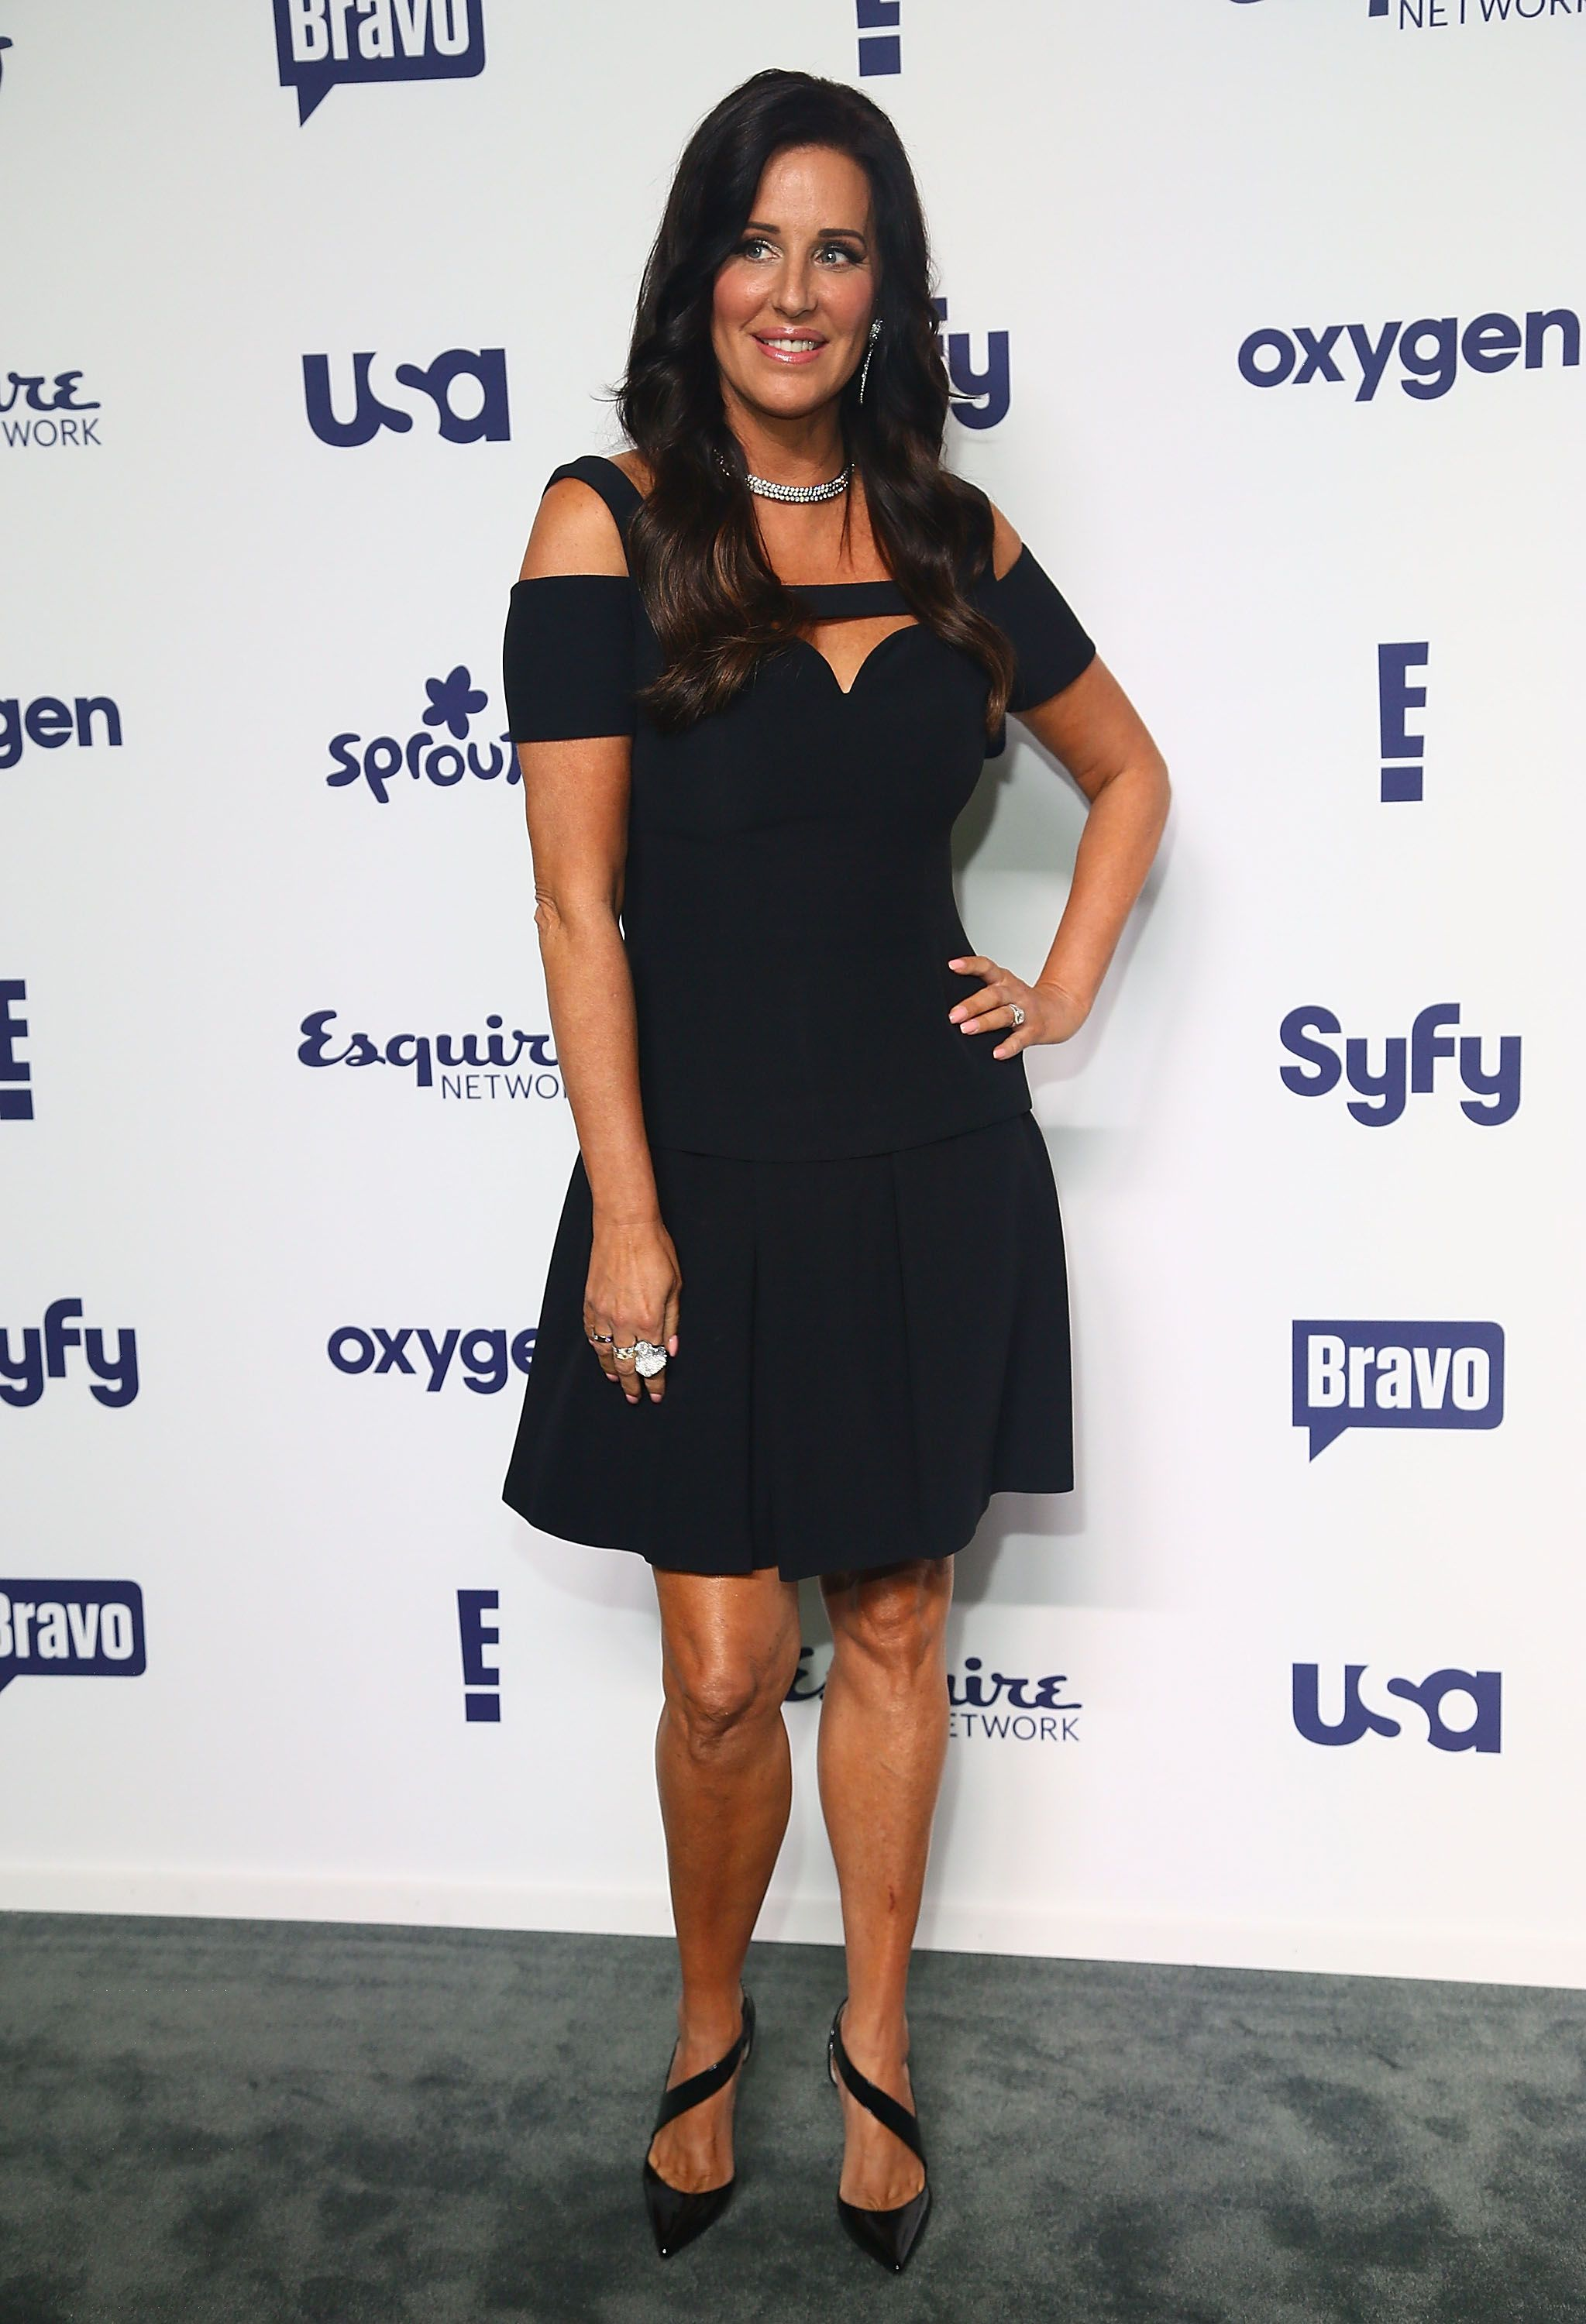 Patti stanger beauty tips